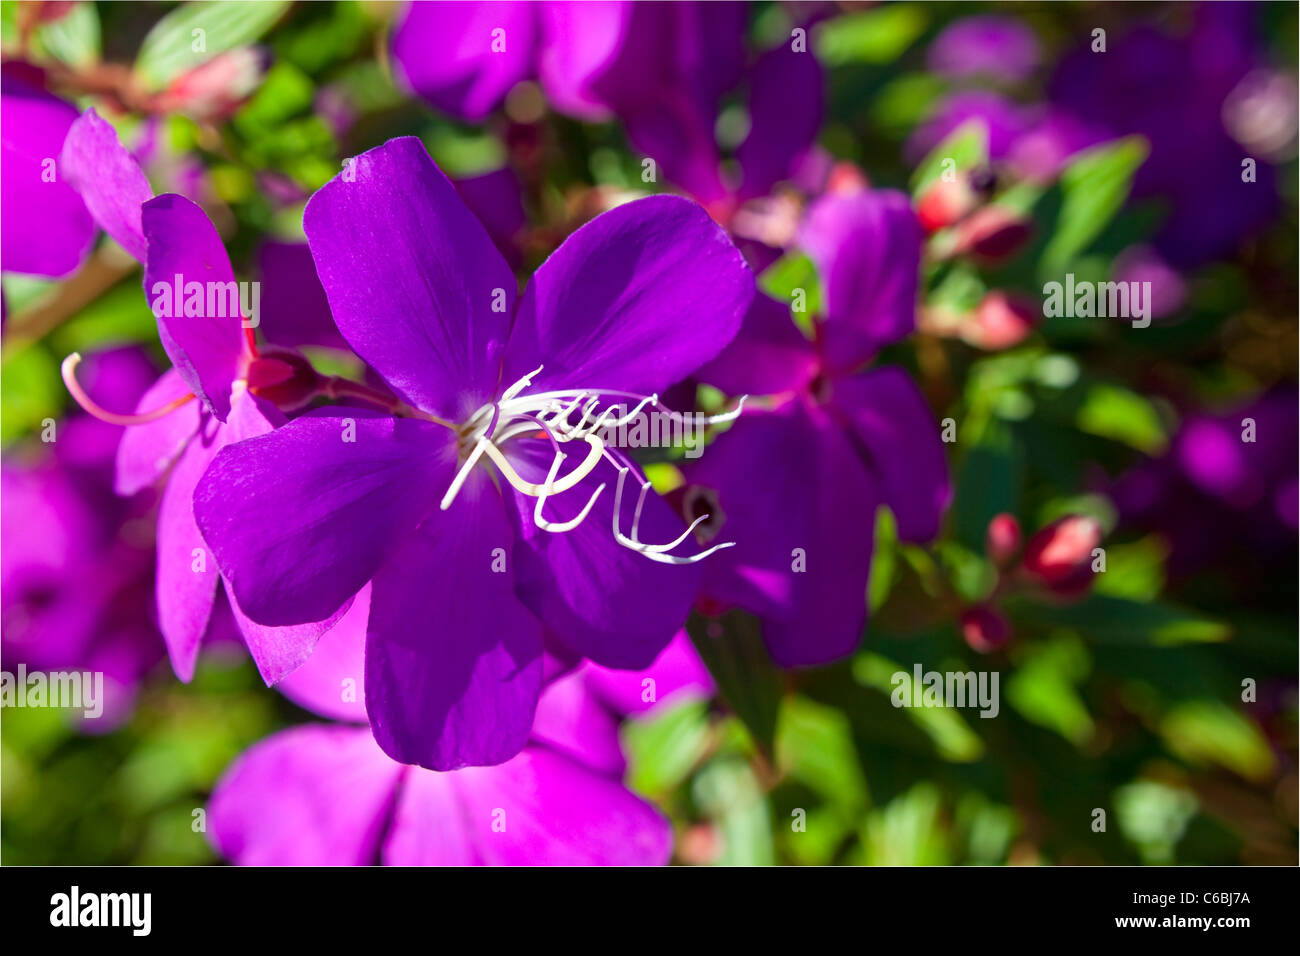 Tibouchina flower, Alstonville, NSW, Australia Stock Photo